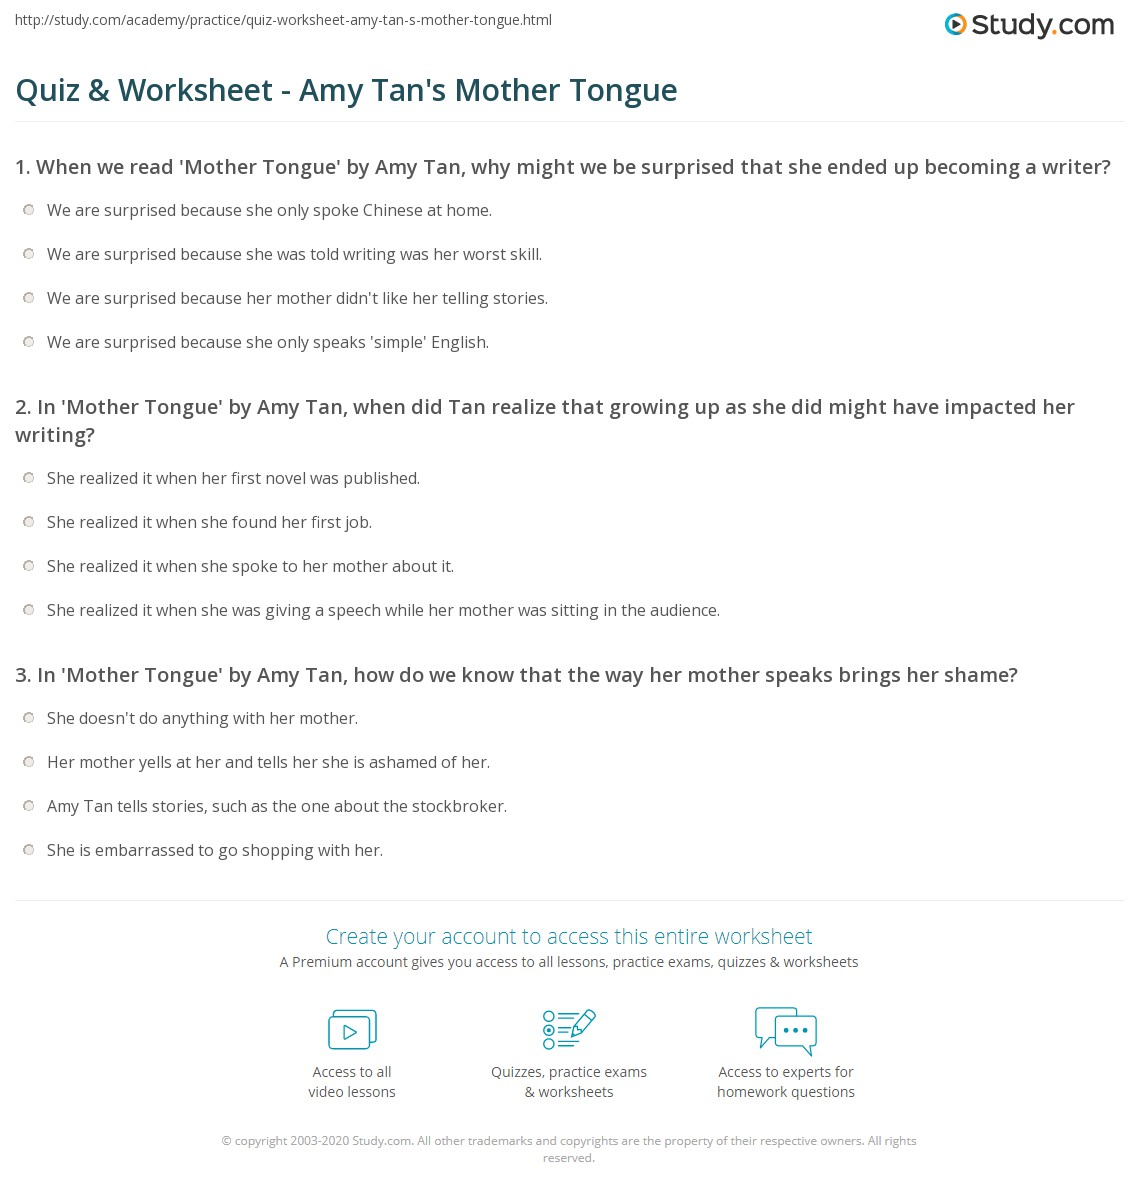 tan mother tongue summary of amy tan talk mother tongue essay  quiz worksheet amy tan s mother tongue com print amy tan s mother tongue summary themes